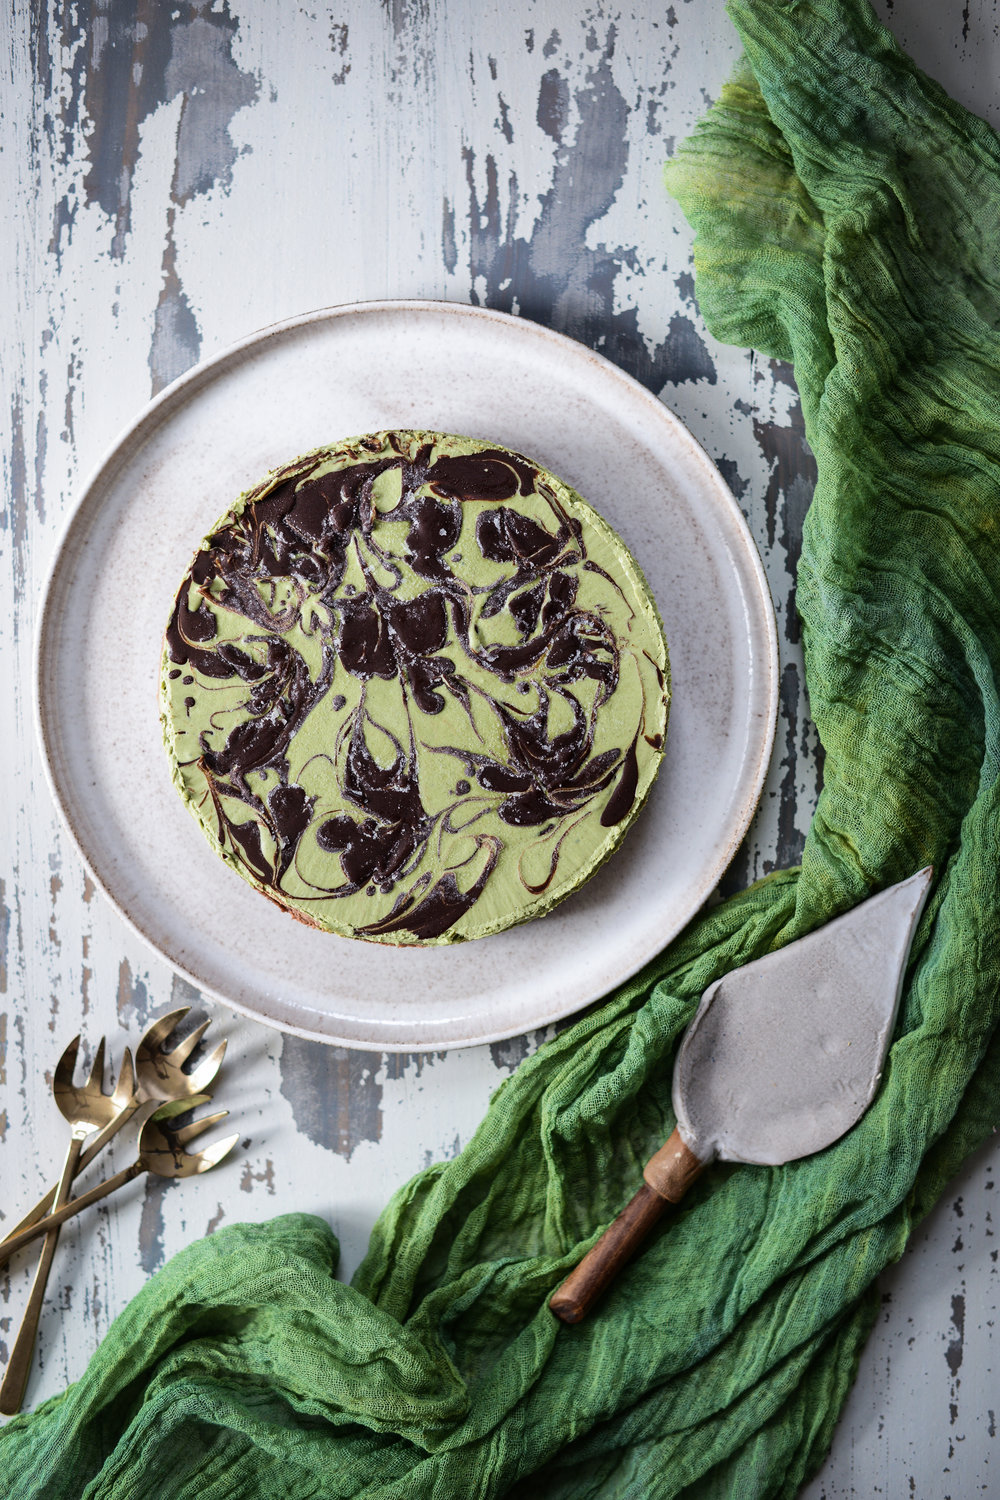 Fare Isle | Vegan Matcha Cocoa Cashew Cheezecake with Hazelnut Cocoa Oat Cookie Crust for St. Patrick's Day